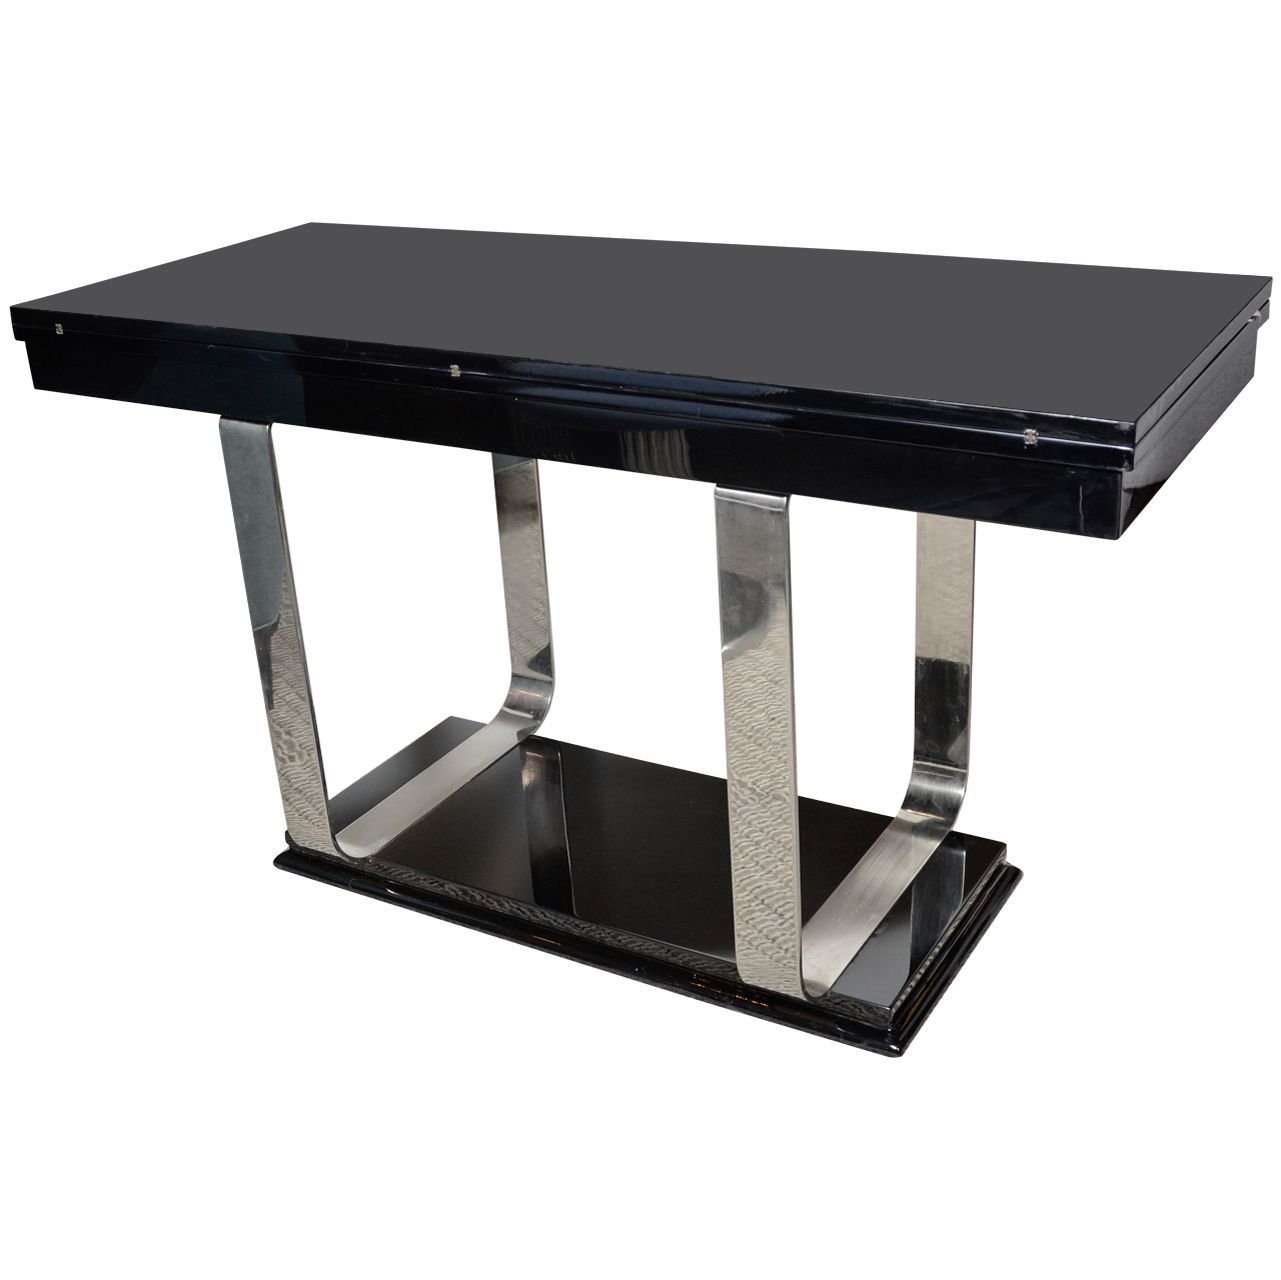 View This Item And Discover Similar Console Tables For Sale At   This Chic  Art Deco Console Converts Simply Into A Dining Table Or Games Table By  Fliping ...